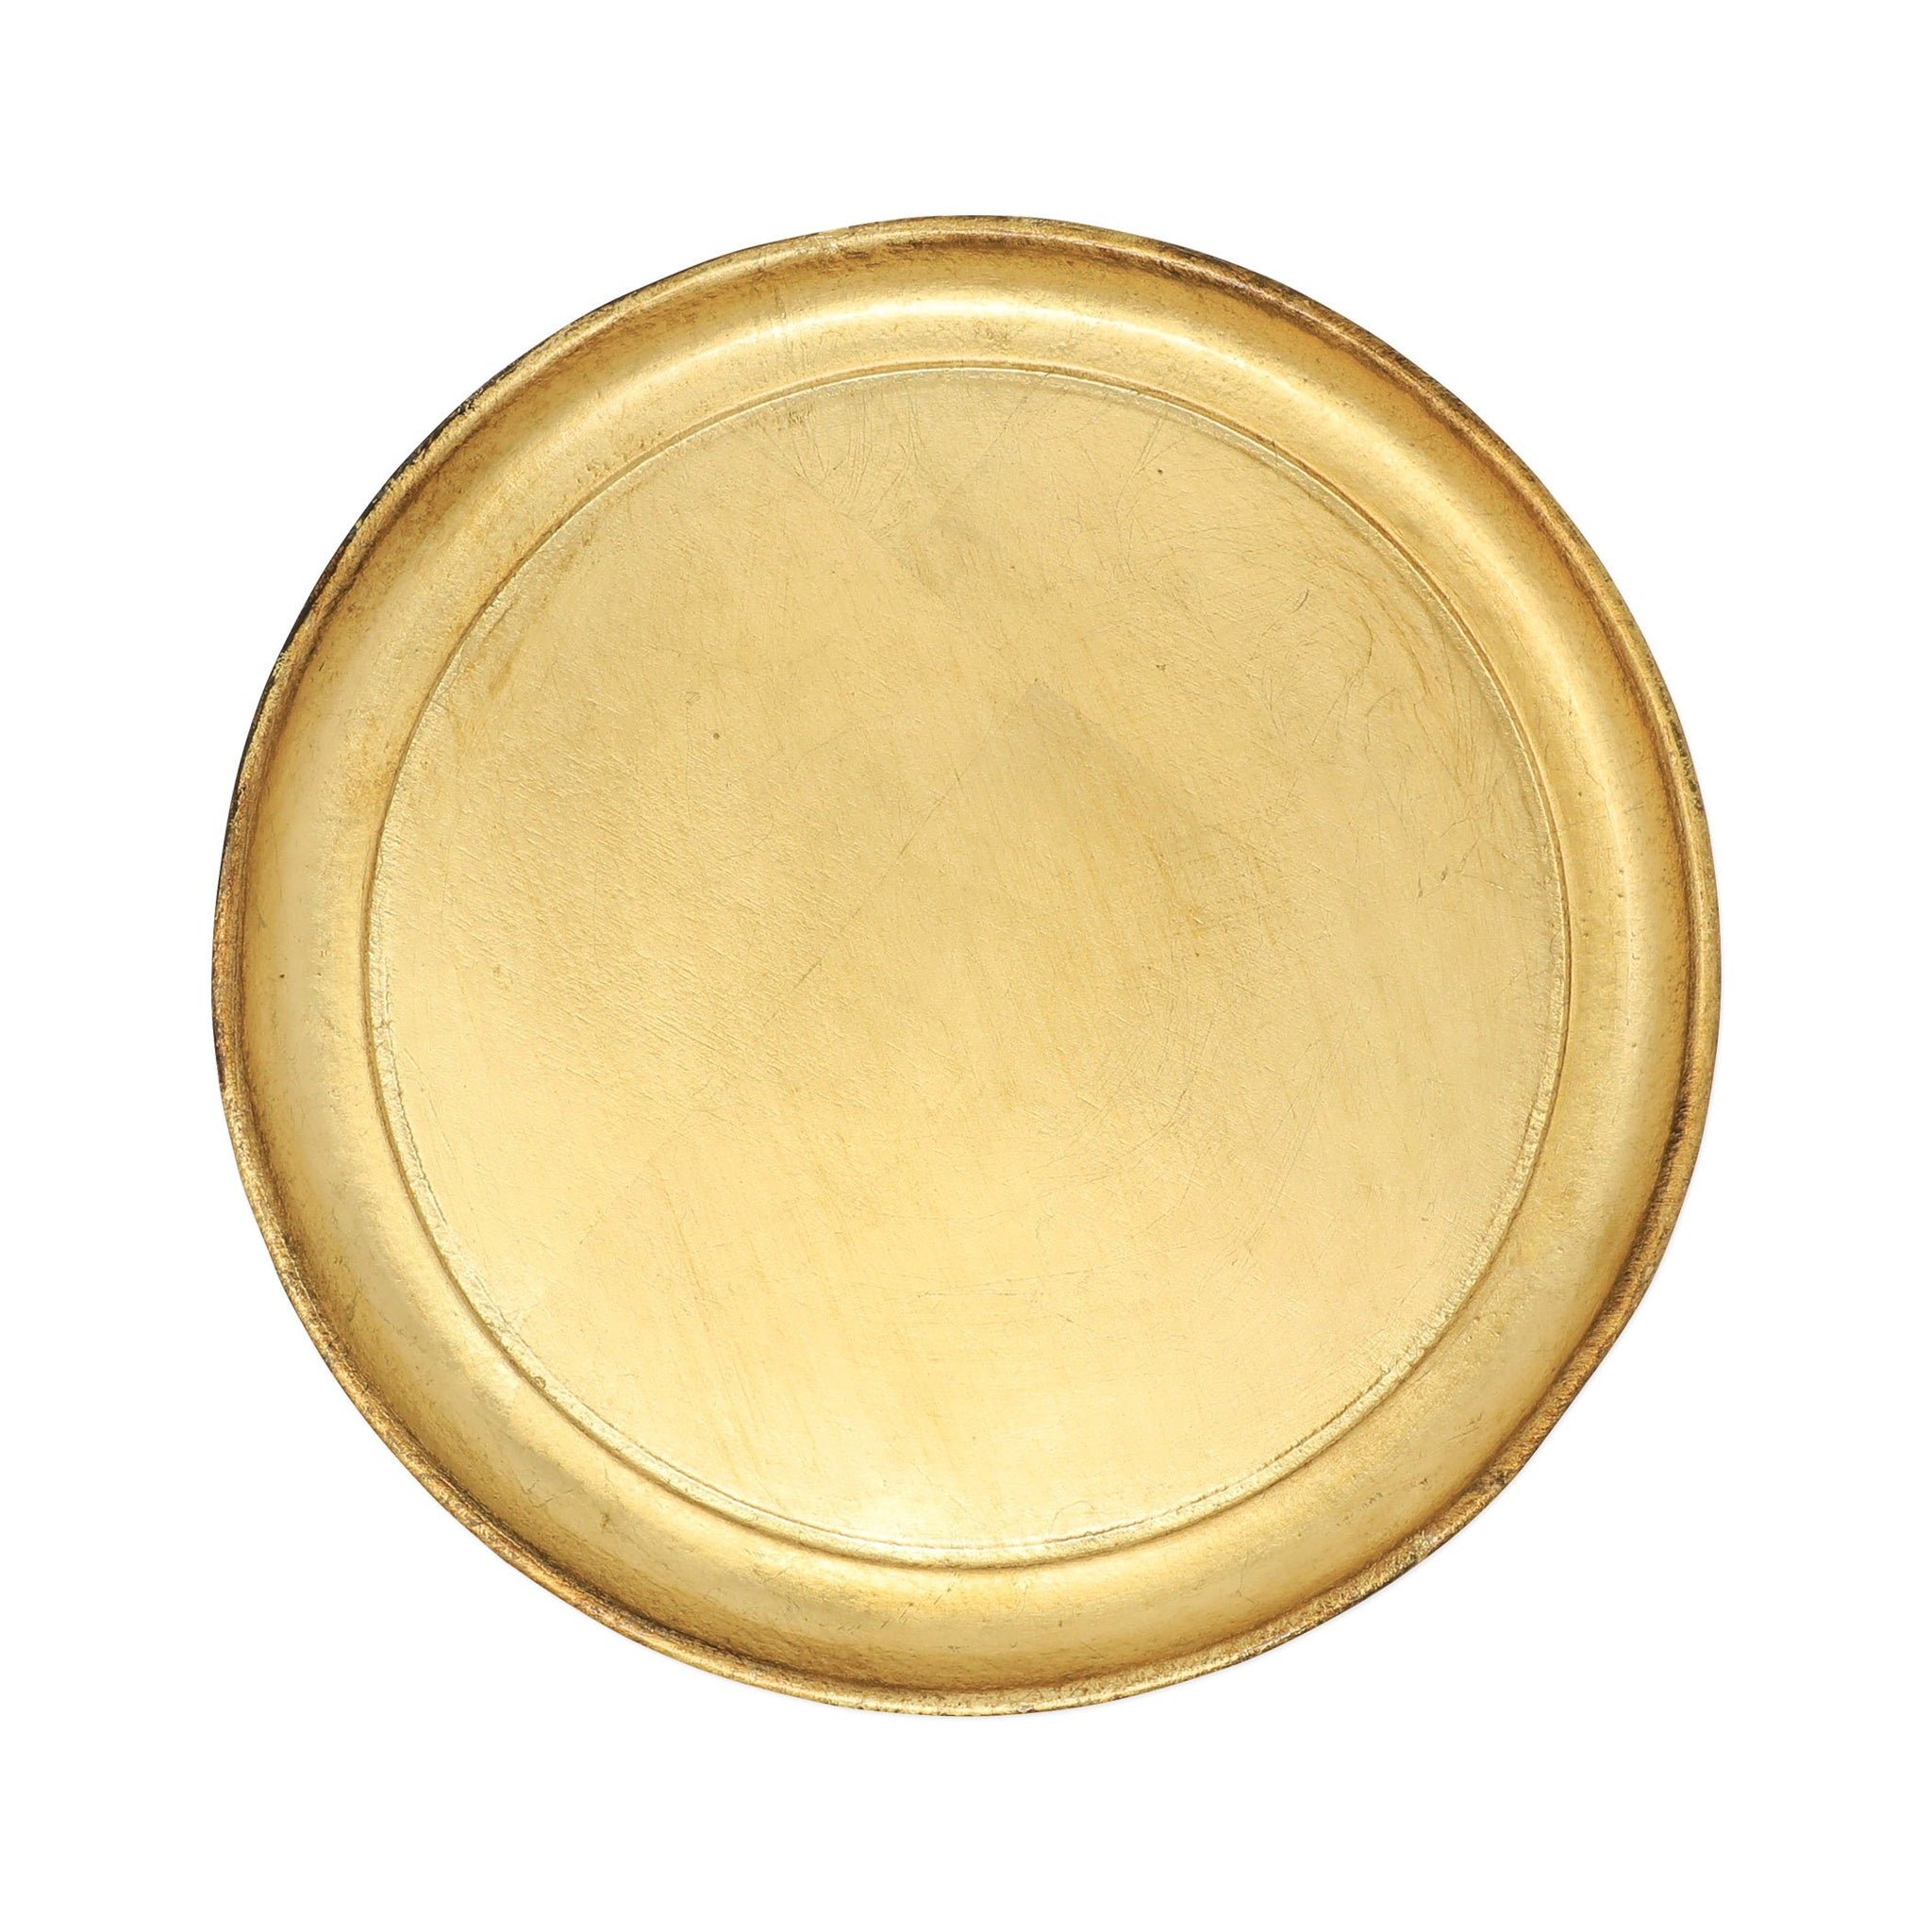 Florentine Wooden Accessories Small Round Tray